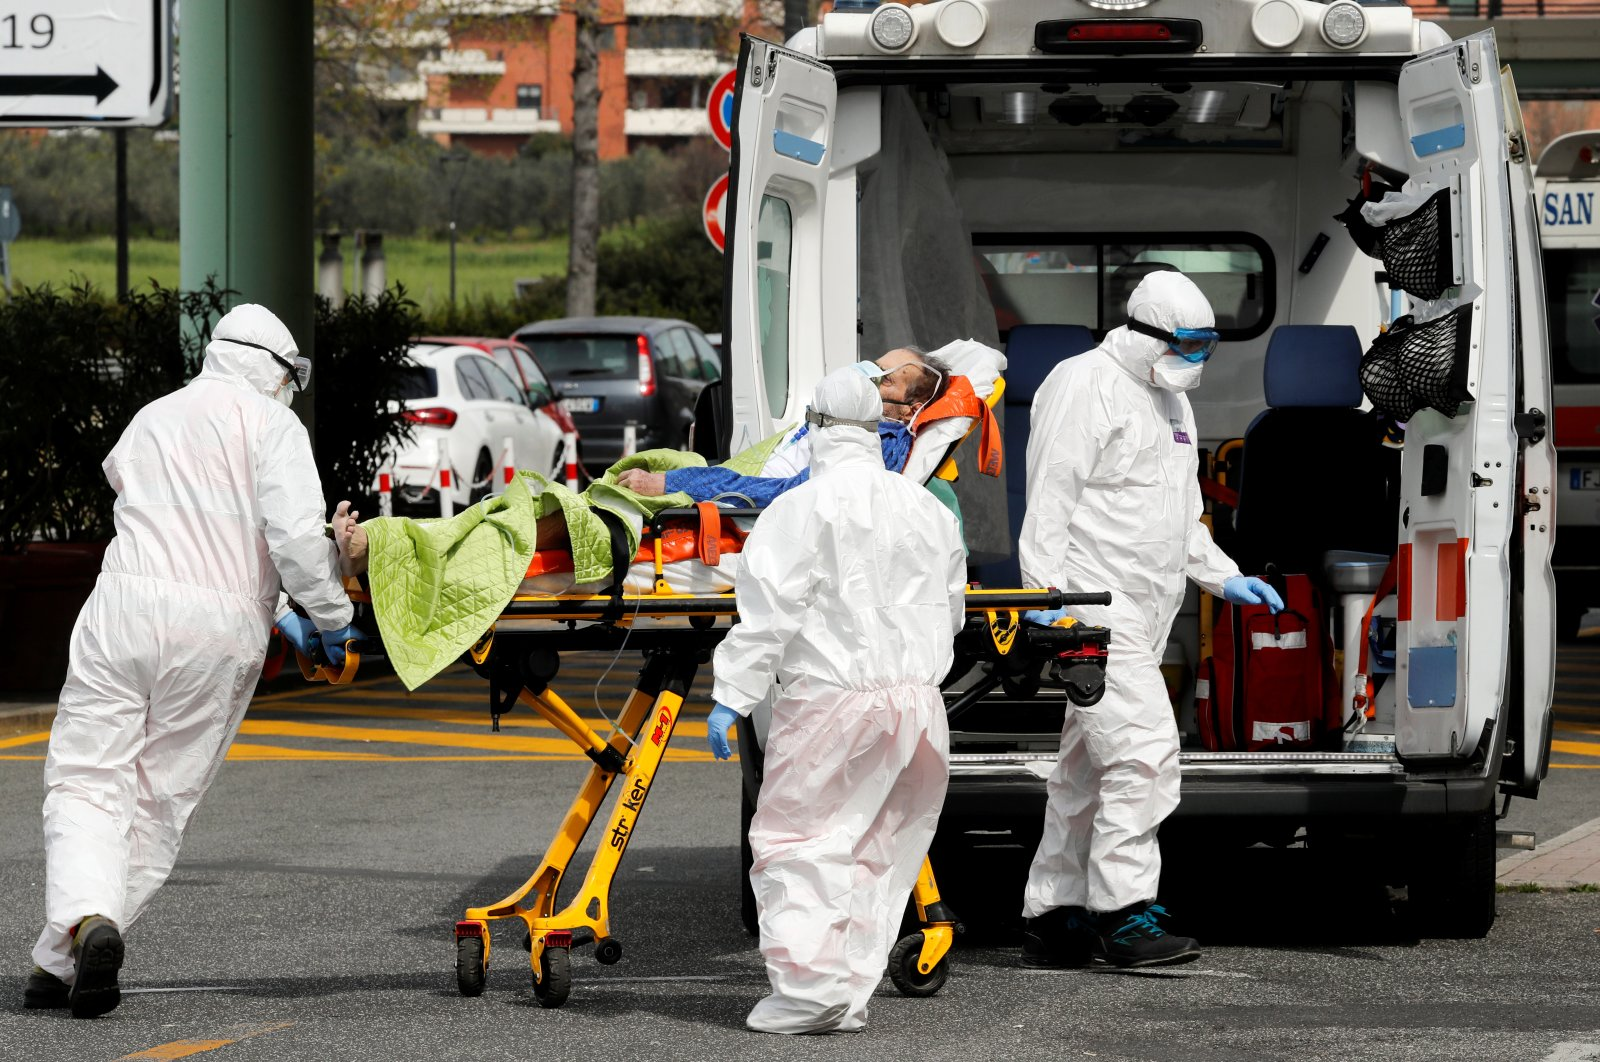 Medical workers in protective suits push a patient on a stretcher in front of the Policlinico Tor Vergata, where patients suffering from the disease caused by the novel coronavirus (COVID-19) are hosted, in Rome, Italy, Monday, March 30, 2020. (Reuters Photo)